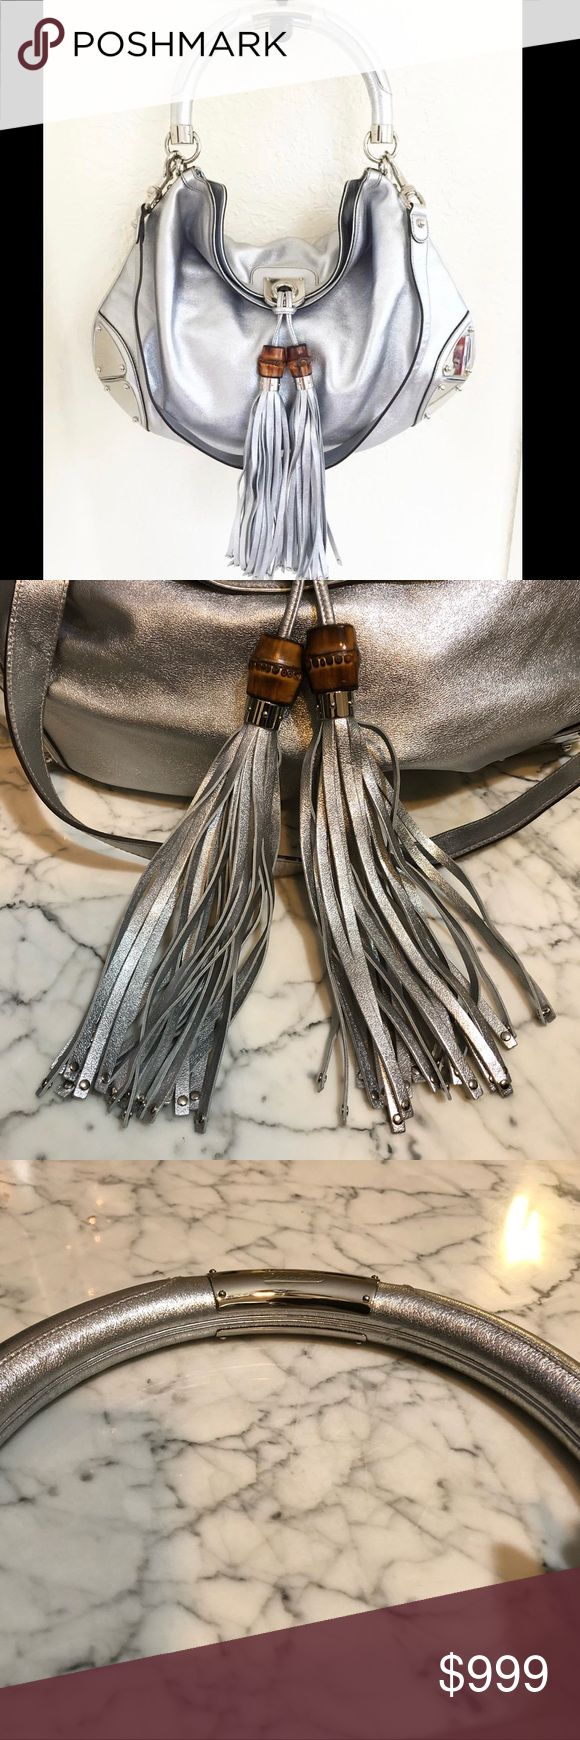 """Gucci Medium Indy Hobo EUC very minor scratches on corner hardware  metallic silver-tone smooth leather Gucci Medium Indy hobo with silver-tone hardware, tonal leather trim, single rolled top handle, metal plate accents at corners, paisley printed woven lining, dual pockets at interior walls; one with zip closure and fold-over flap closure featuring bamboo tassel accent at front.  5"""" drop handle  Detachable shoulder strap 16"""" drop  H12xW15xD2 inches Gucci Bags Hobos"""